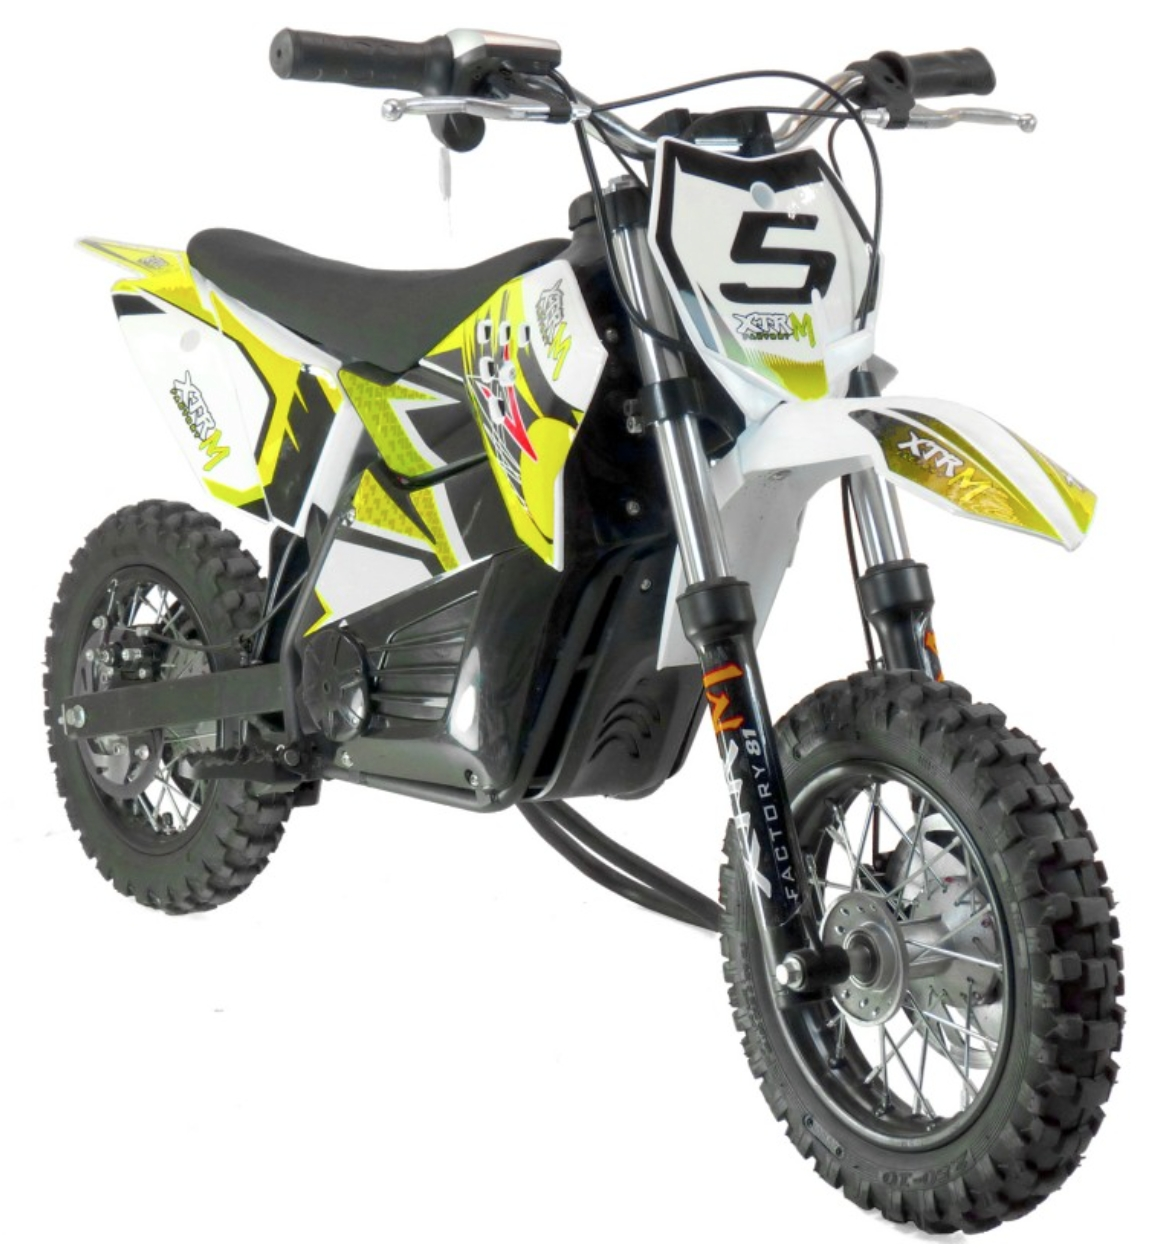 moto cross electrique 800w 10 10 jaune. Black Bedroom Furniture Sets. Home Design Ideas